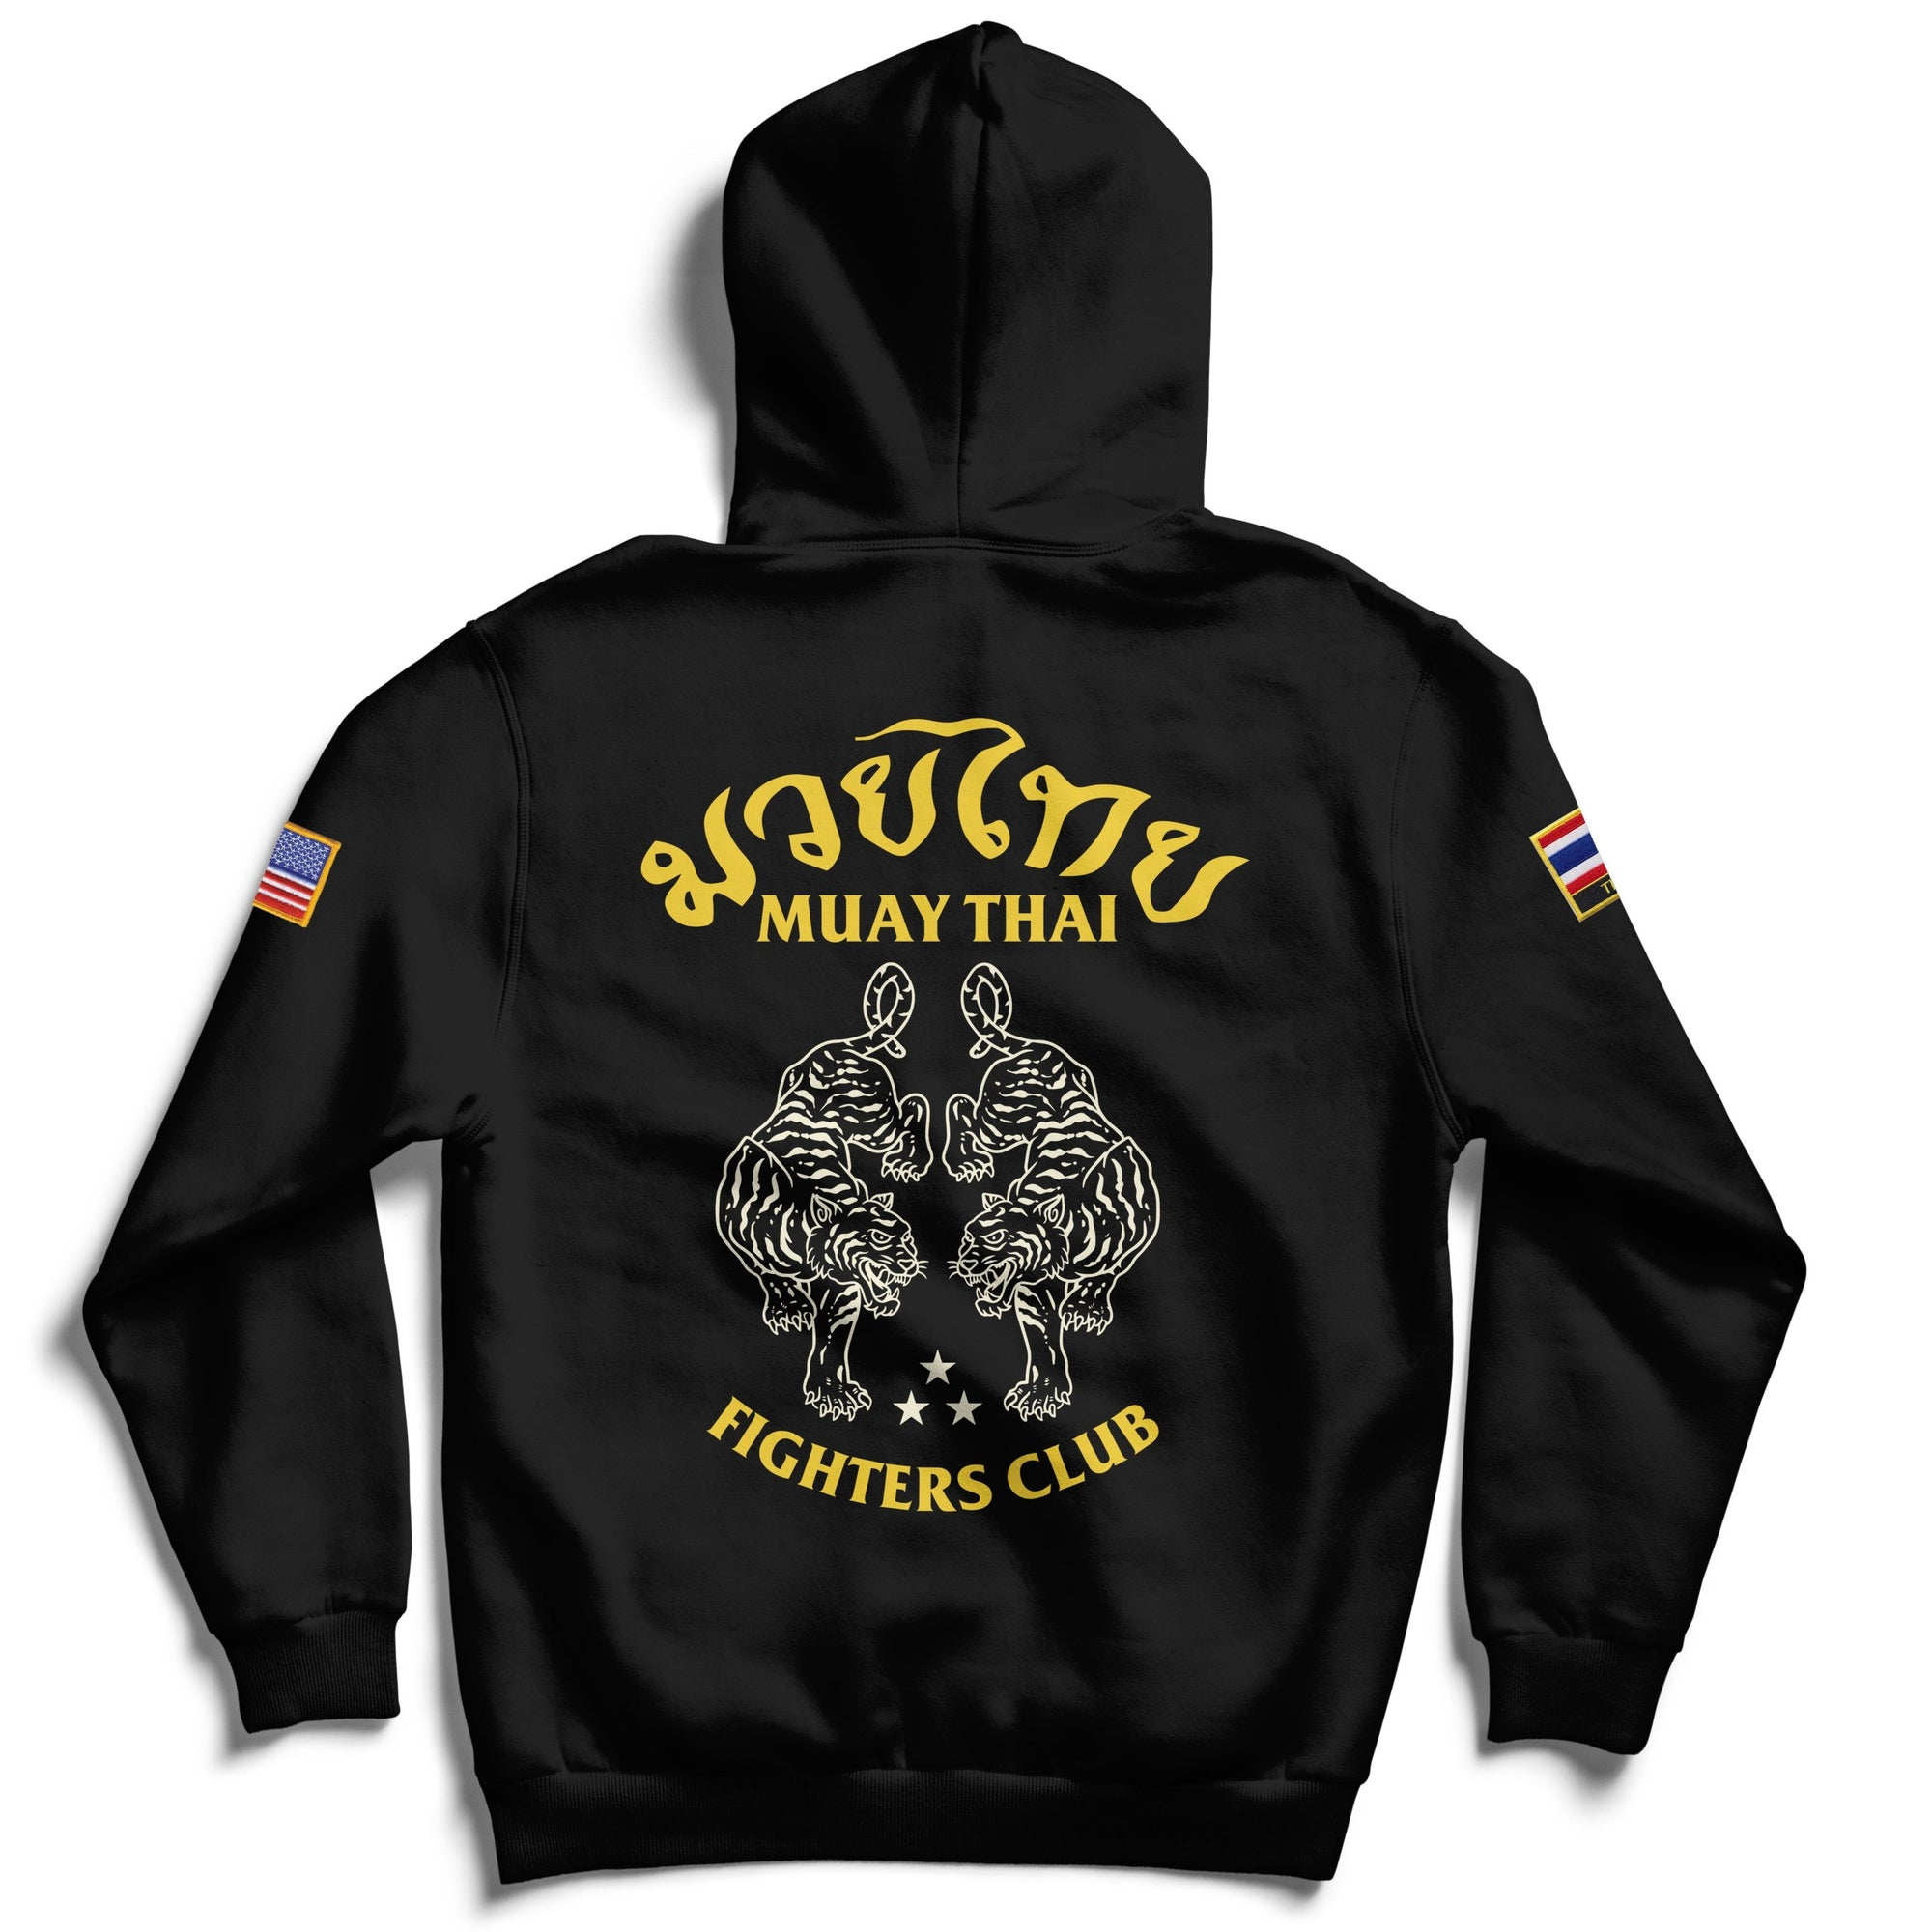 MUAY THAI TWIN TIGER HOODIE - BLACK v2